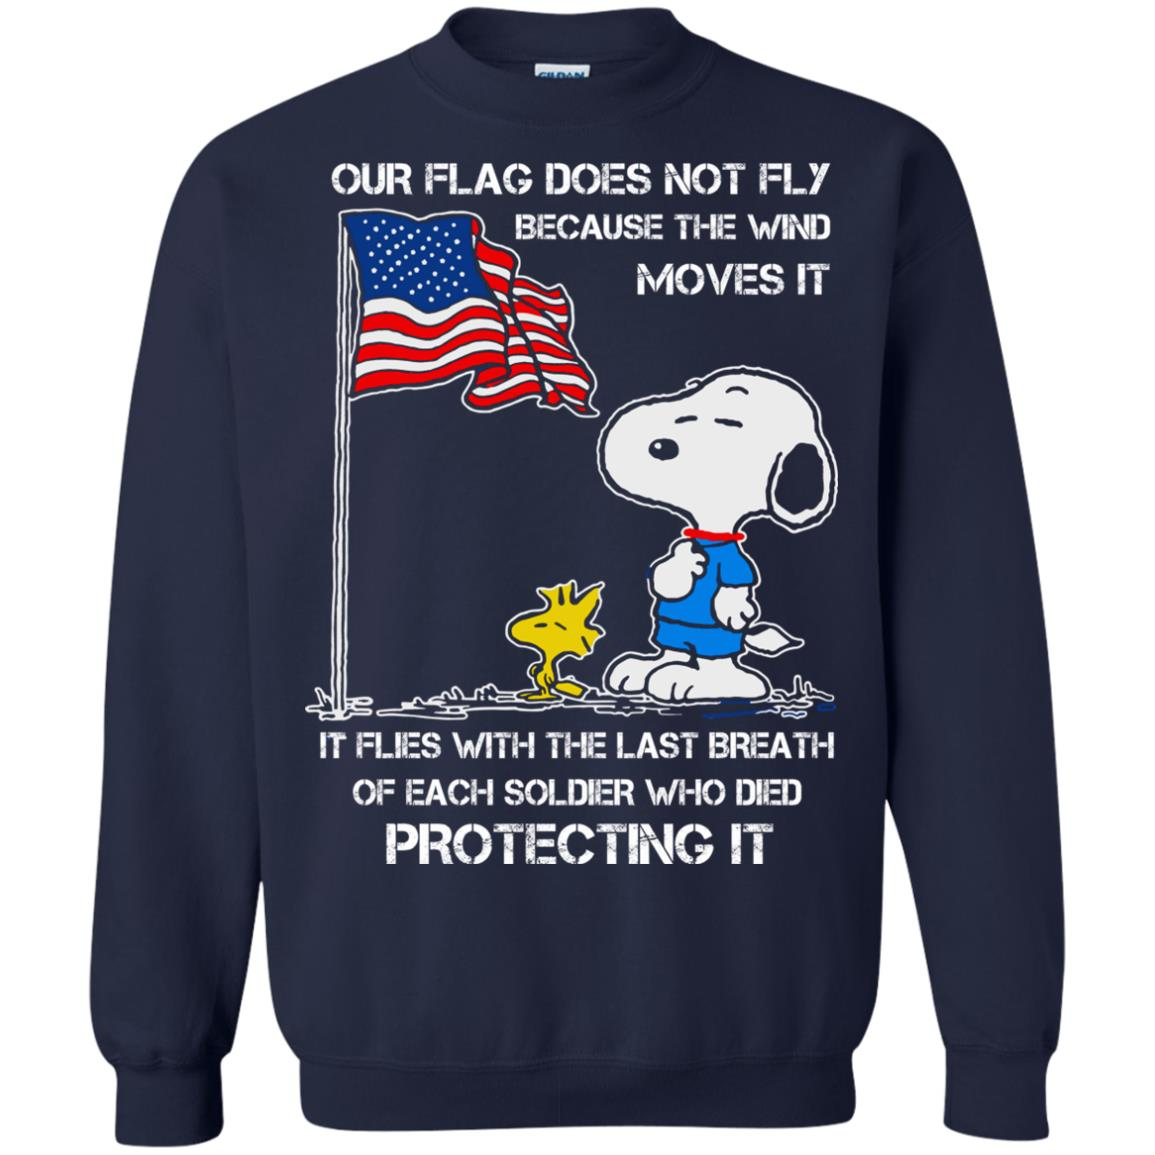 image 802 - Snoopy: Our flag does not fly because the wind moves it shirt, sweater